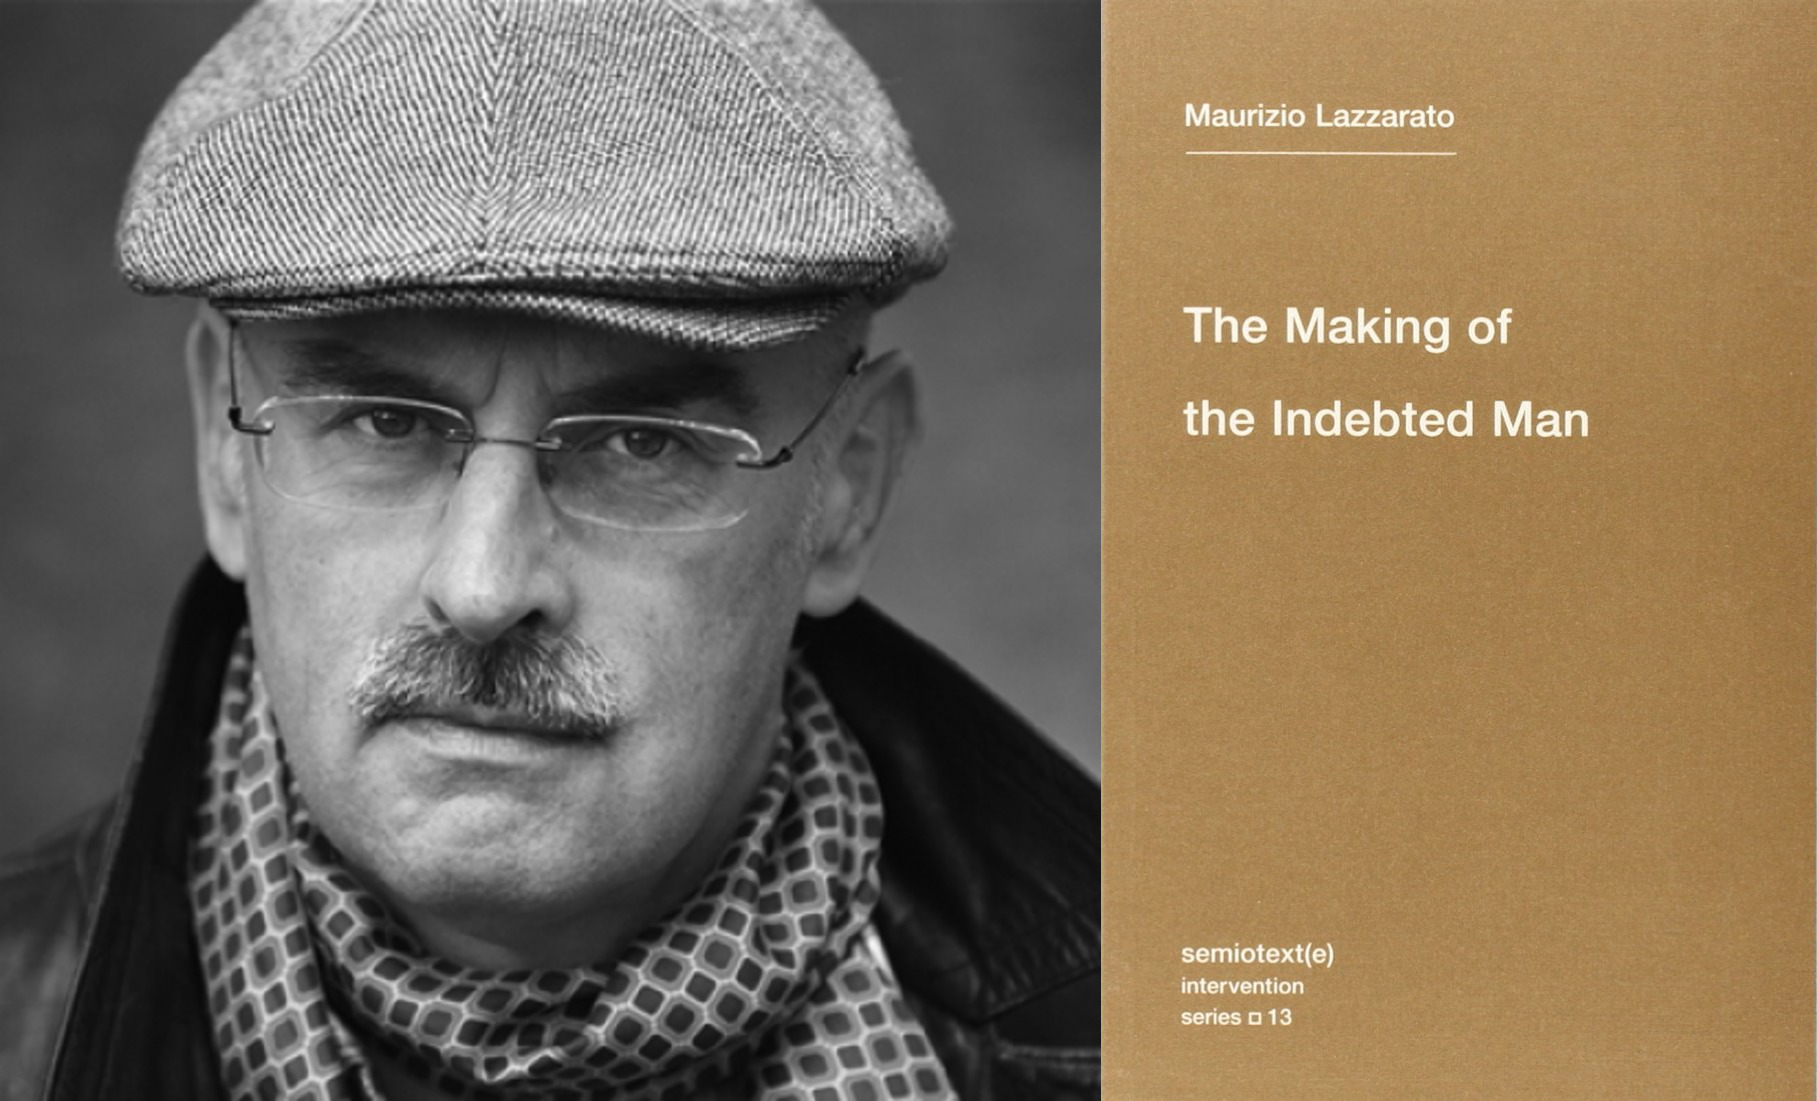 Maurizio Lazzarato - The Making of the Indebted Man: An Essay on the Neoliberal Condition